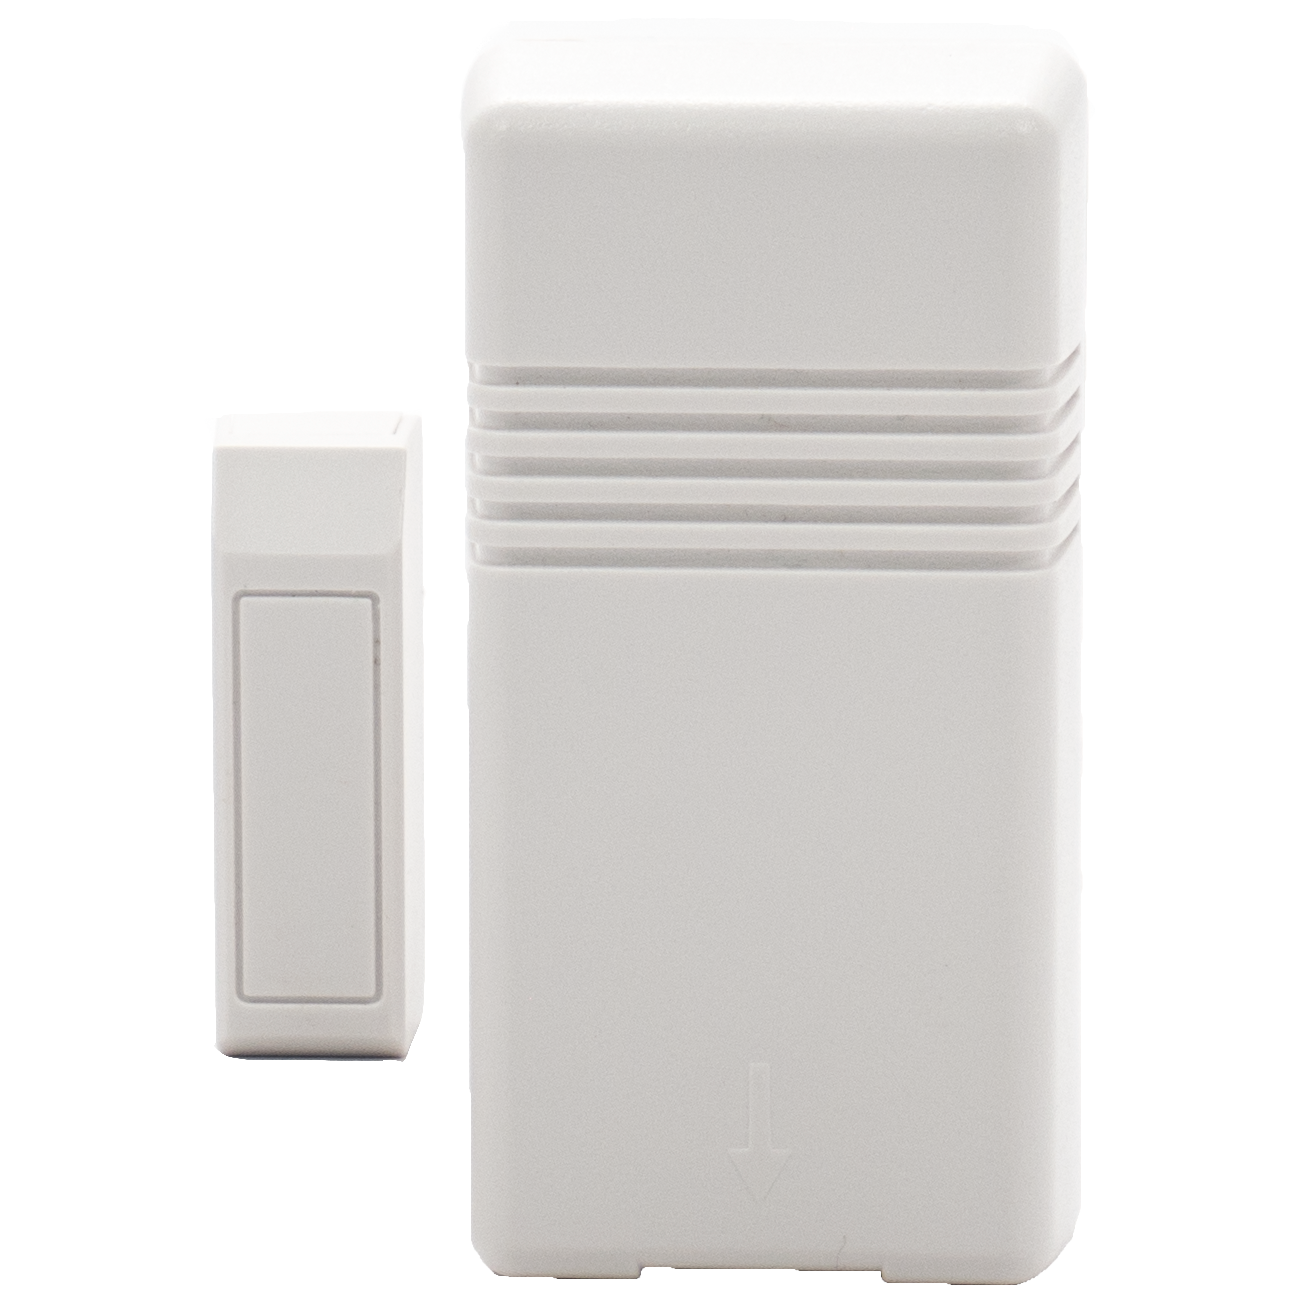 5816WMWH - Honeywell Wireless Door & Window Alarm Contact